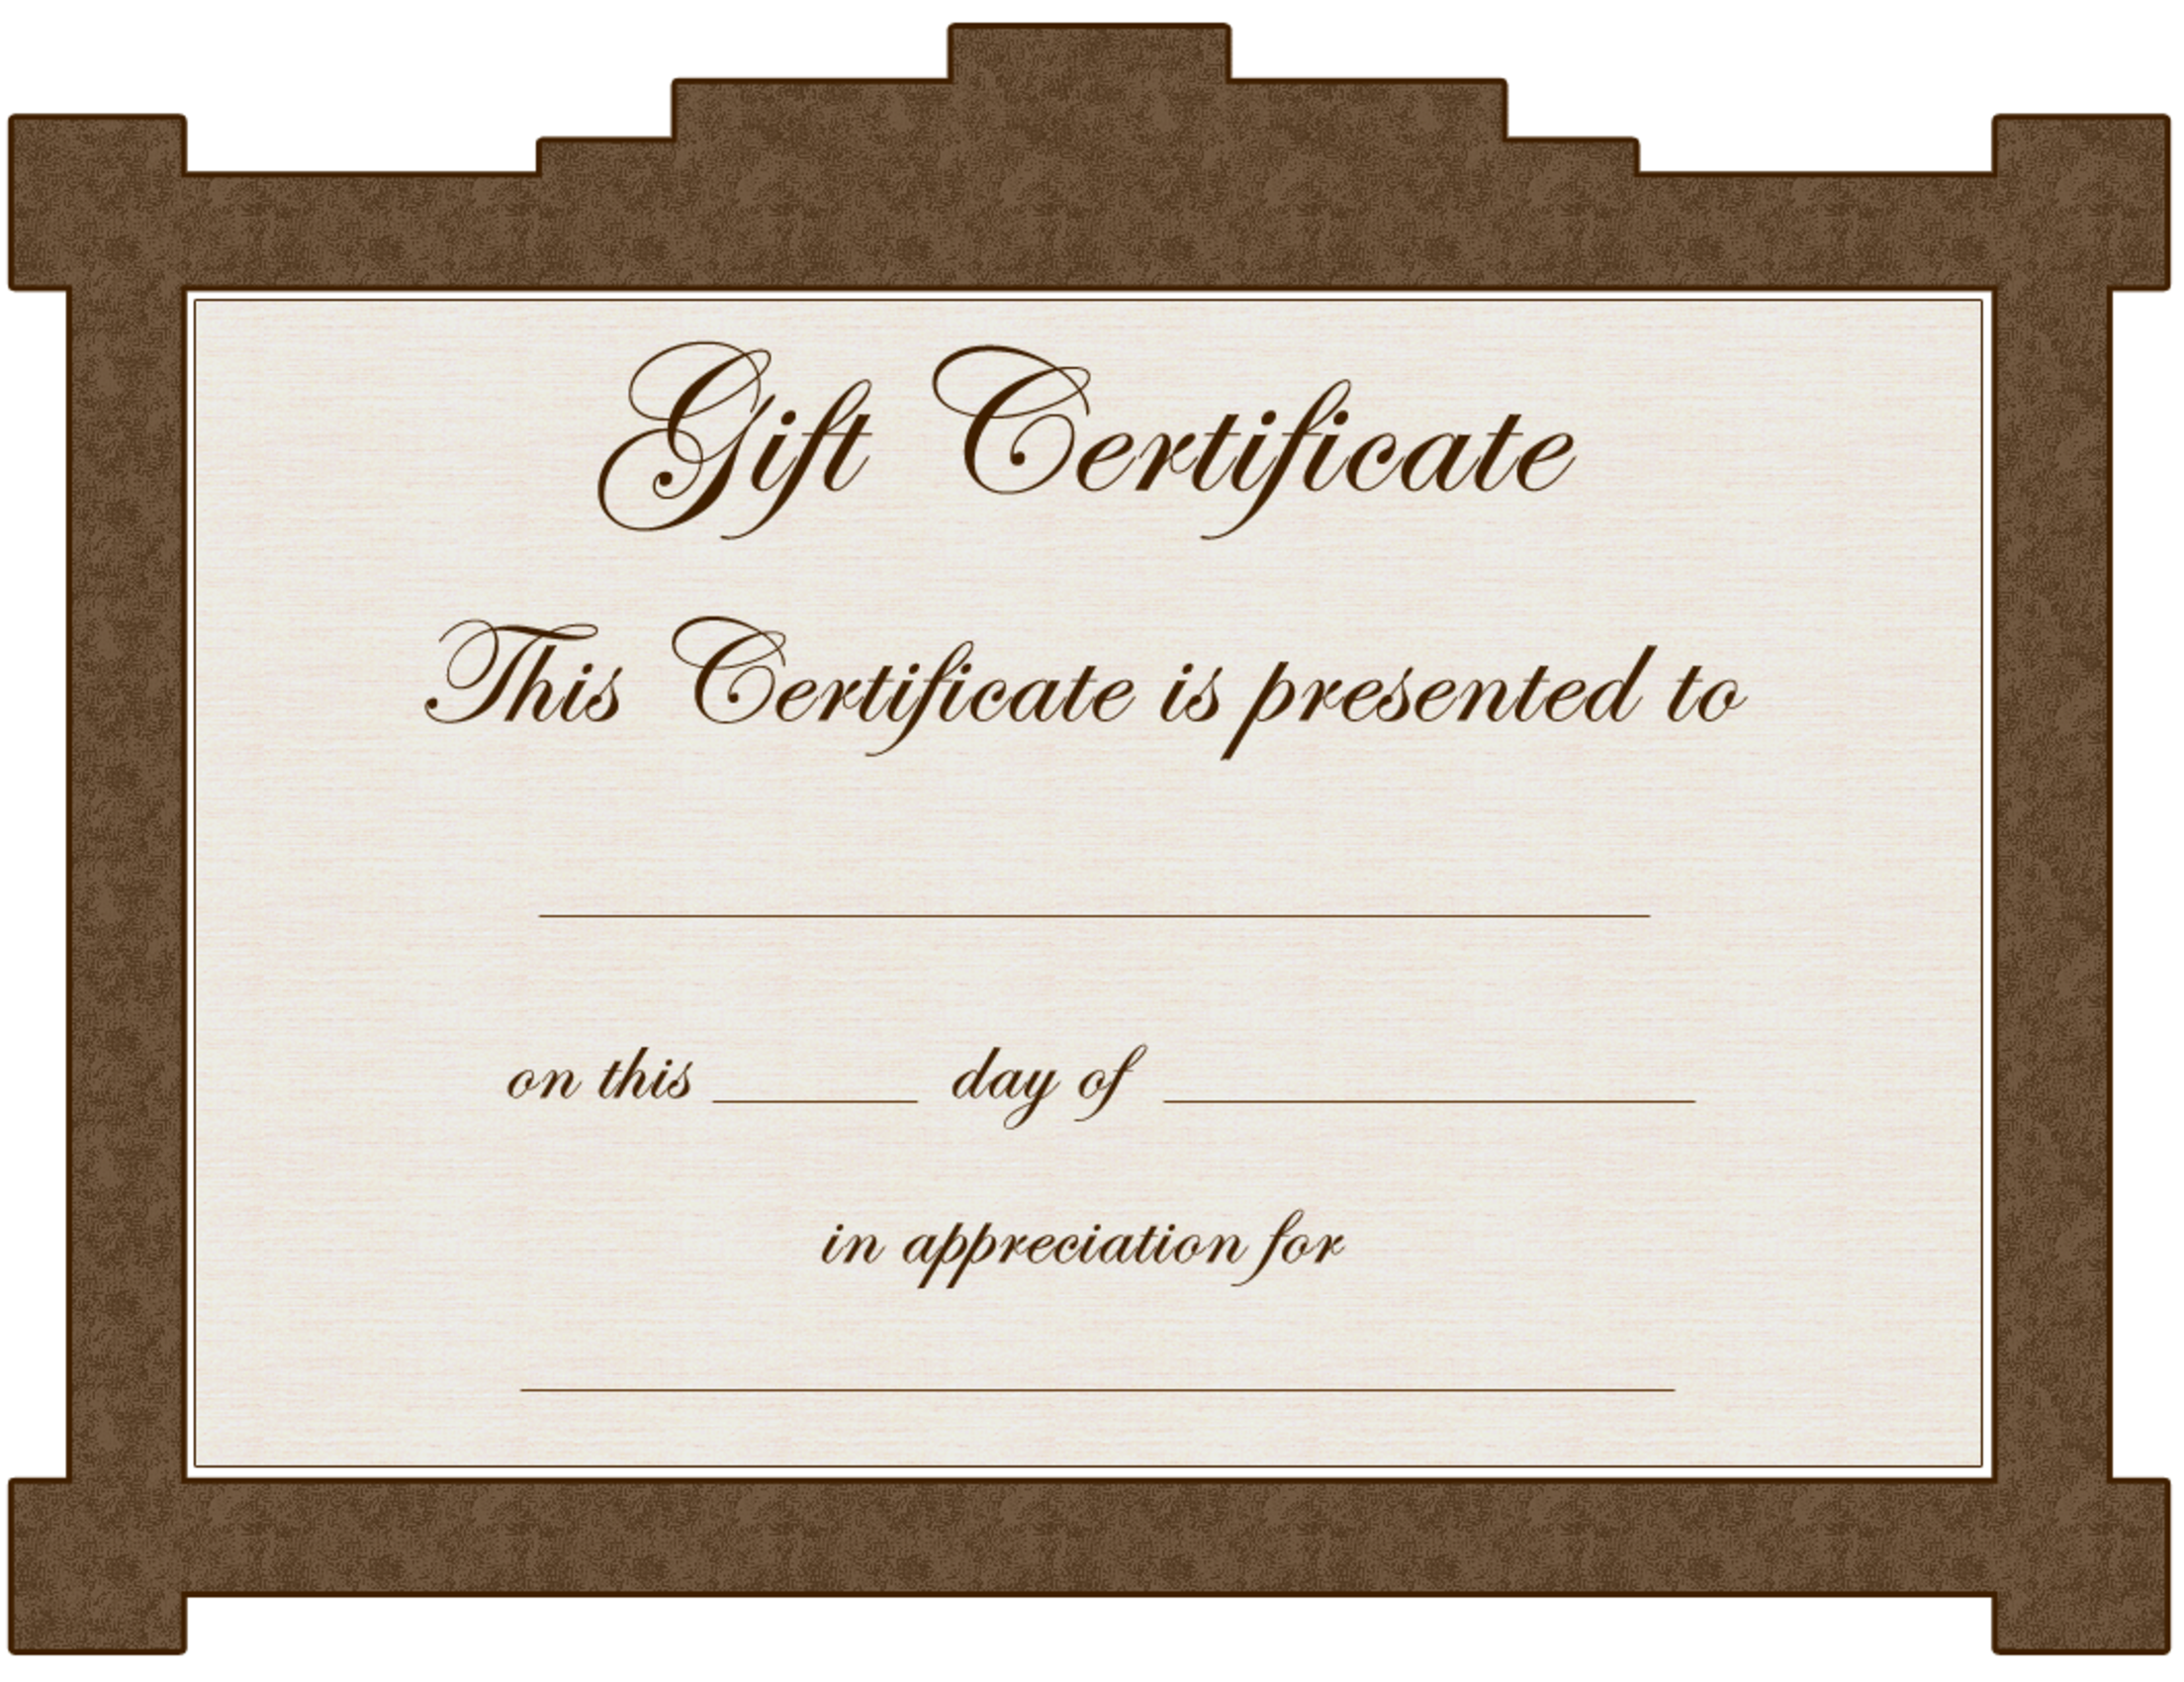 tattoo gift certificate template cliparts co avon gift certificate template